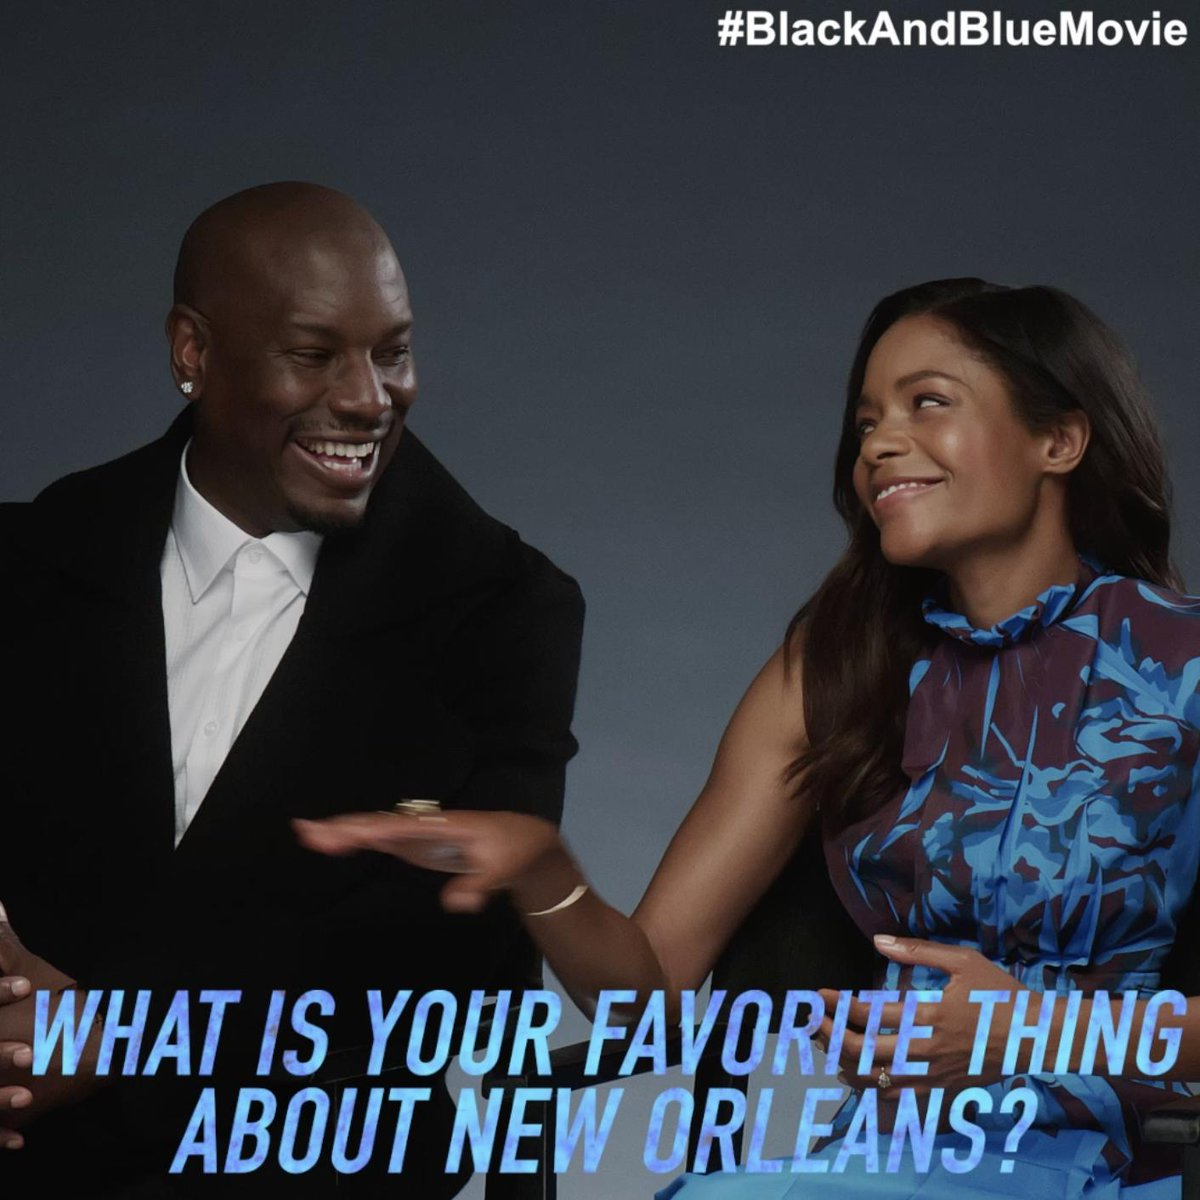 It's time for a Rapid-fire Q&A with @BlackBlueMovie's @NaomieHarris and @Tyrese - watch now. 💥